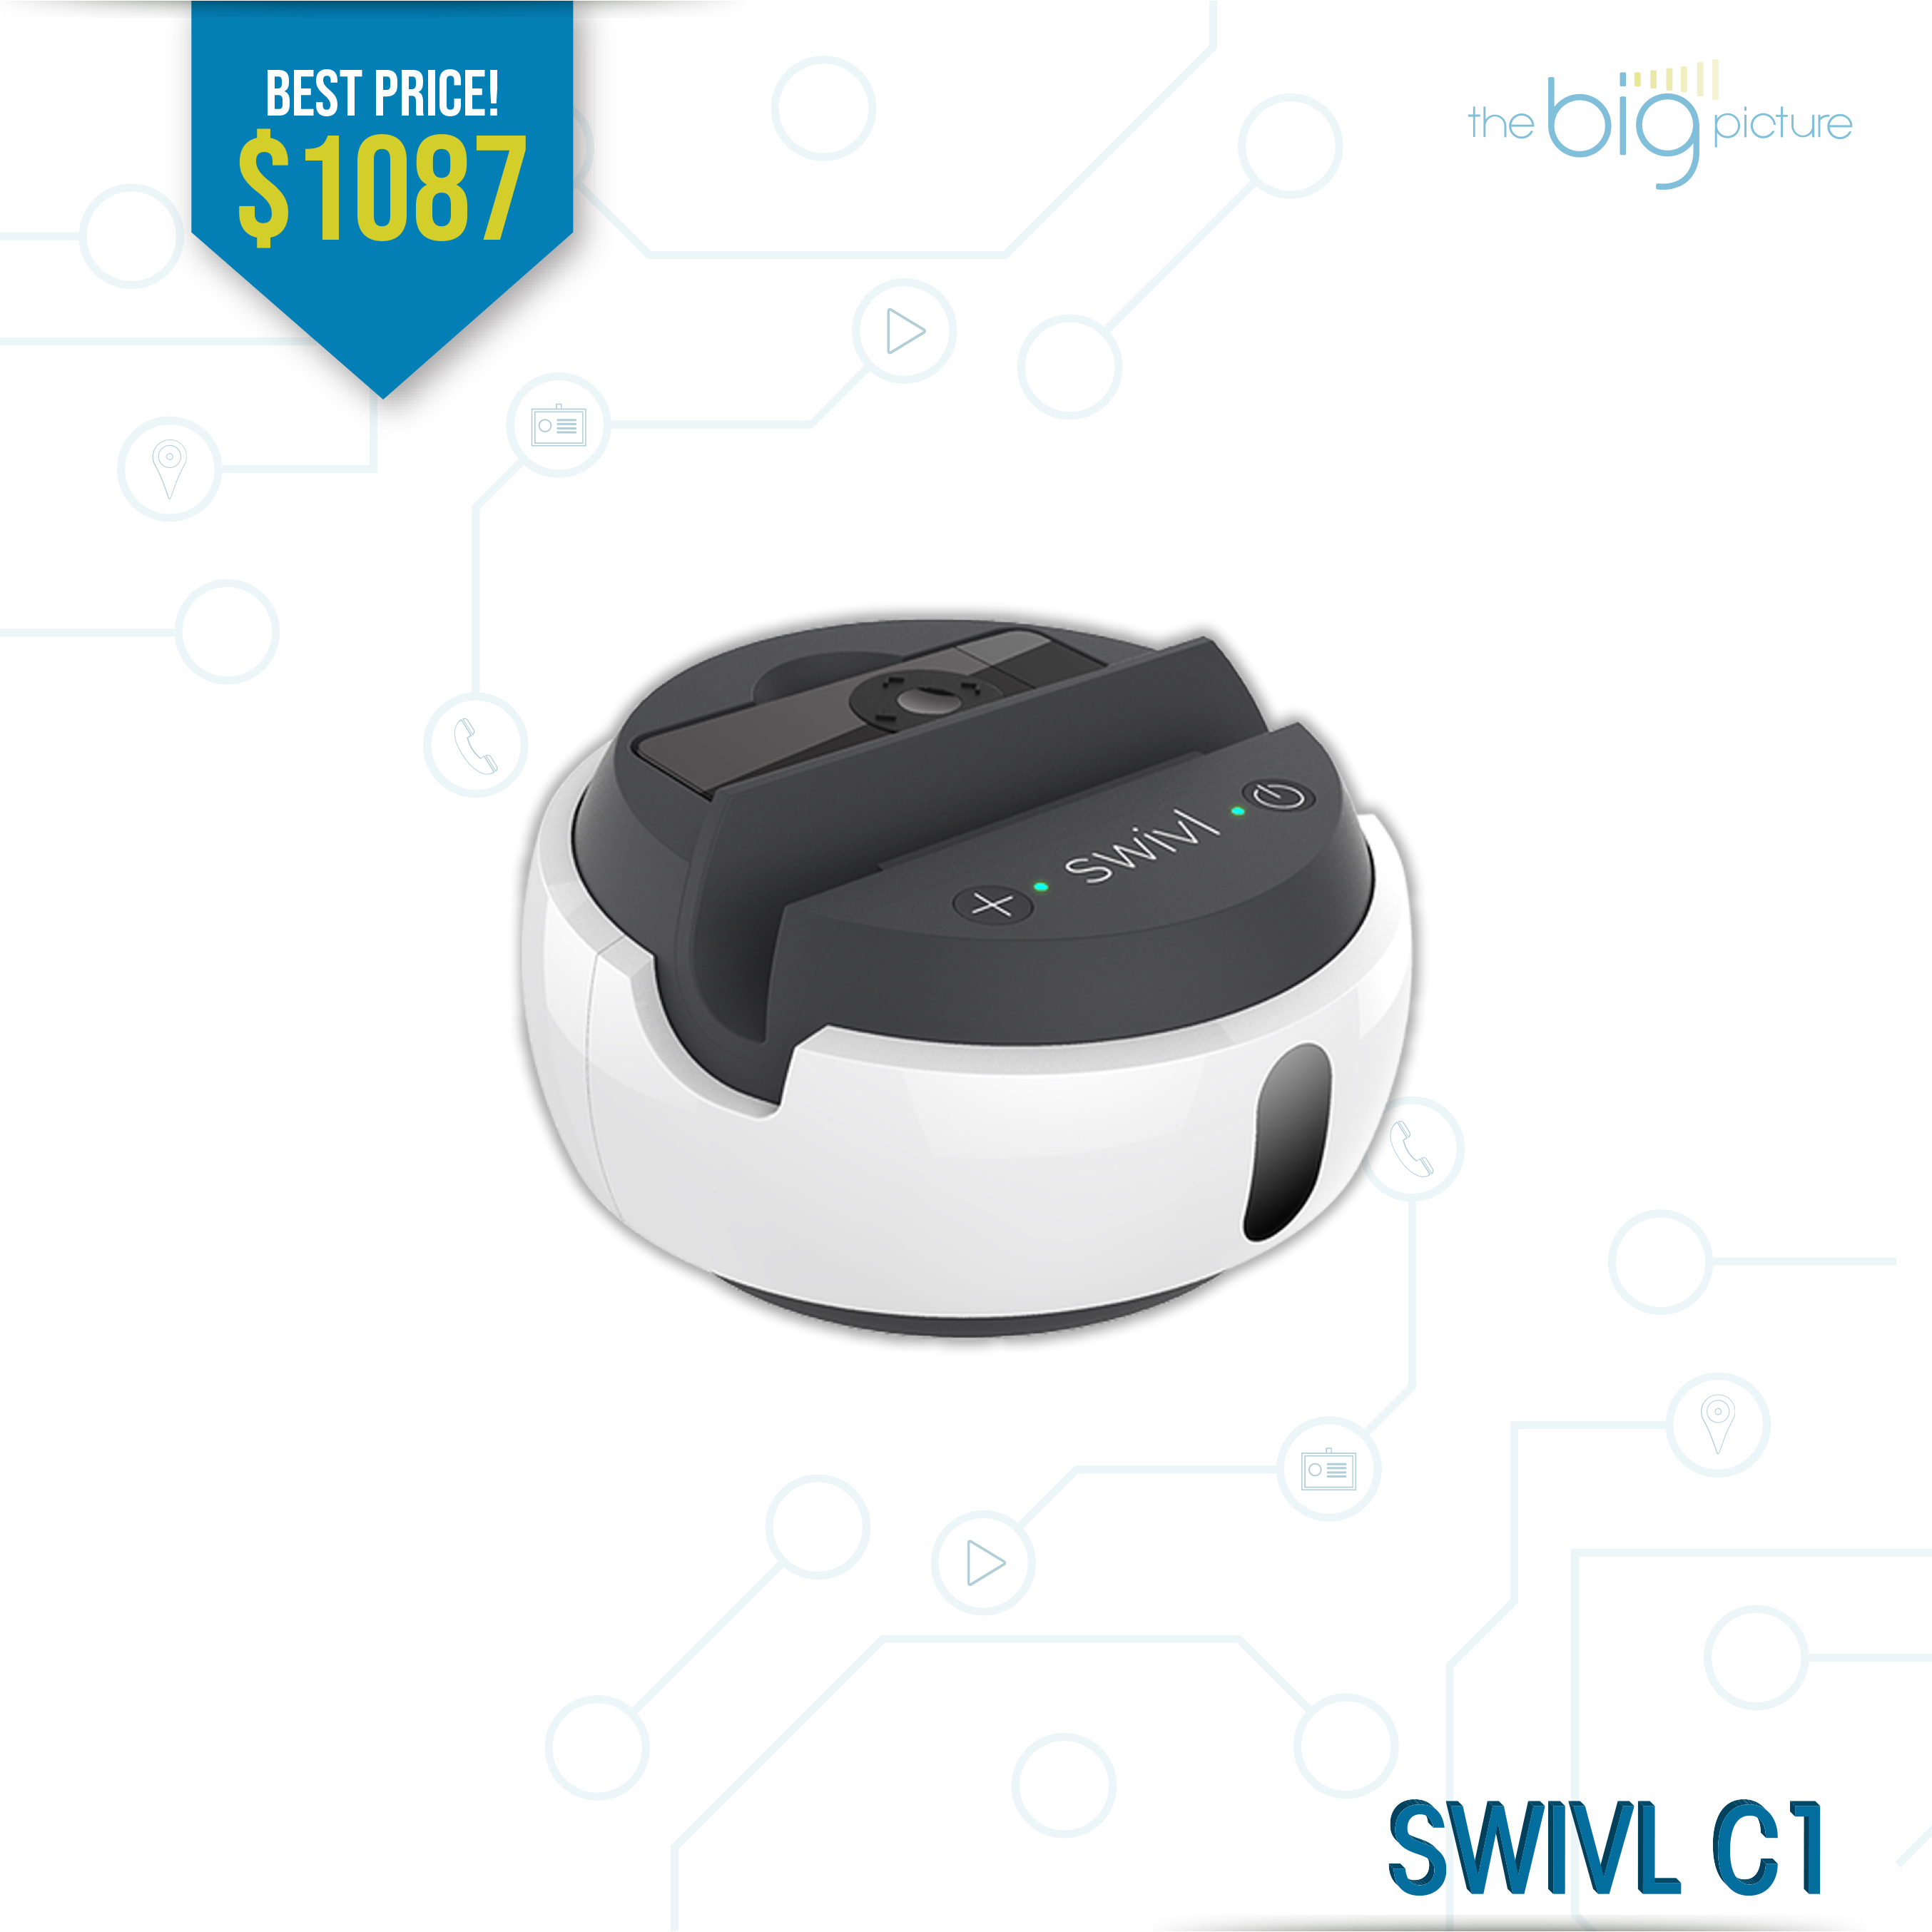 A set of products for SWIVL C1